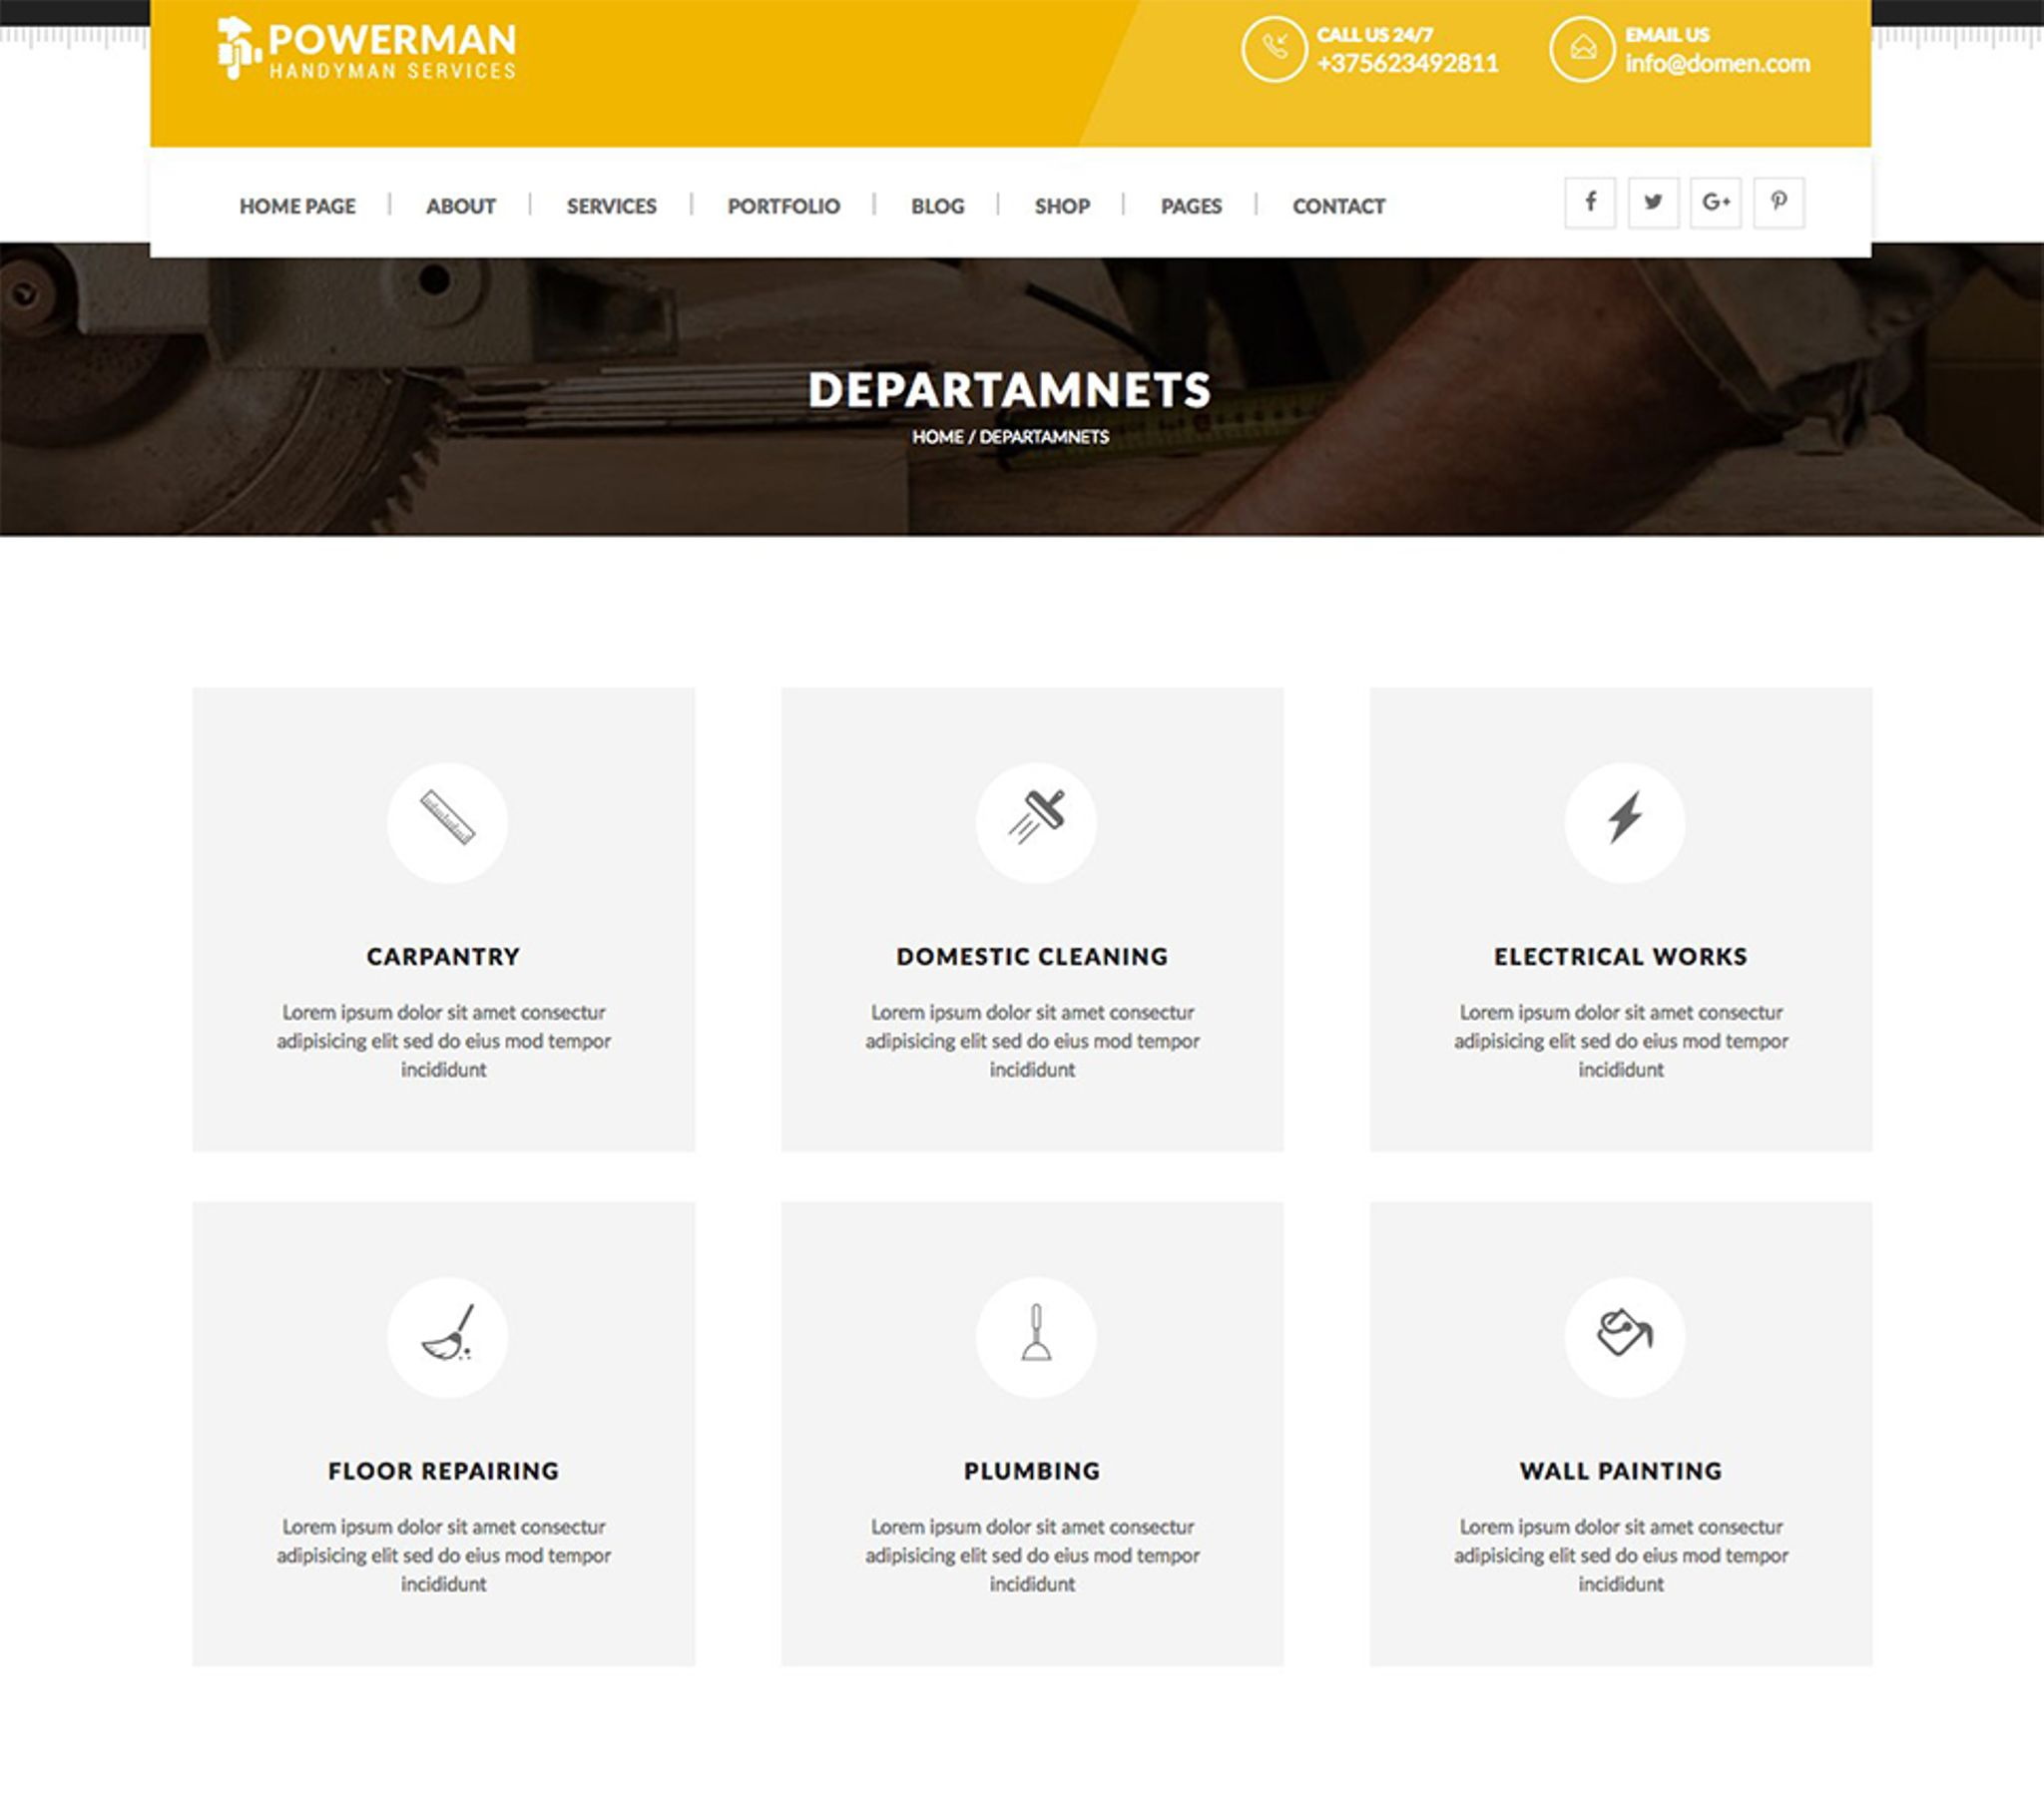 powerman handyman services wordpress theme 65725